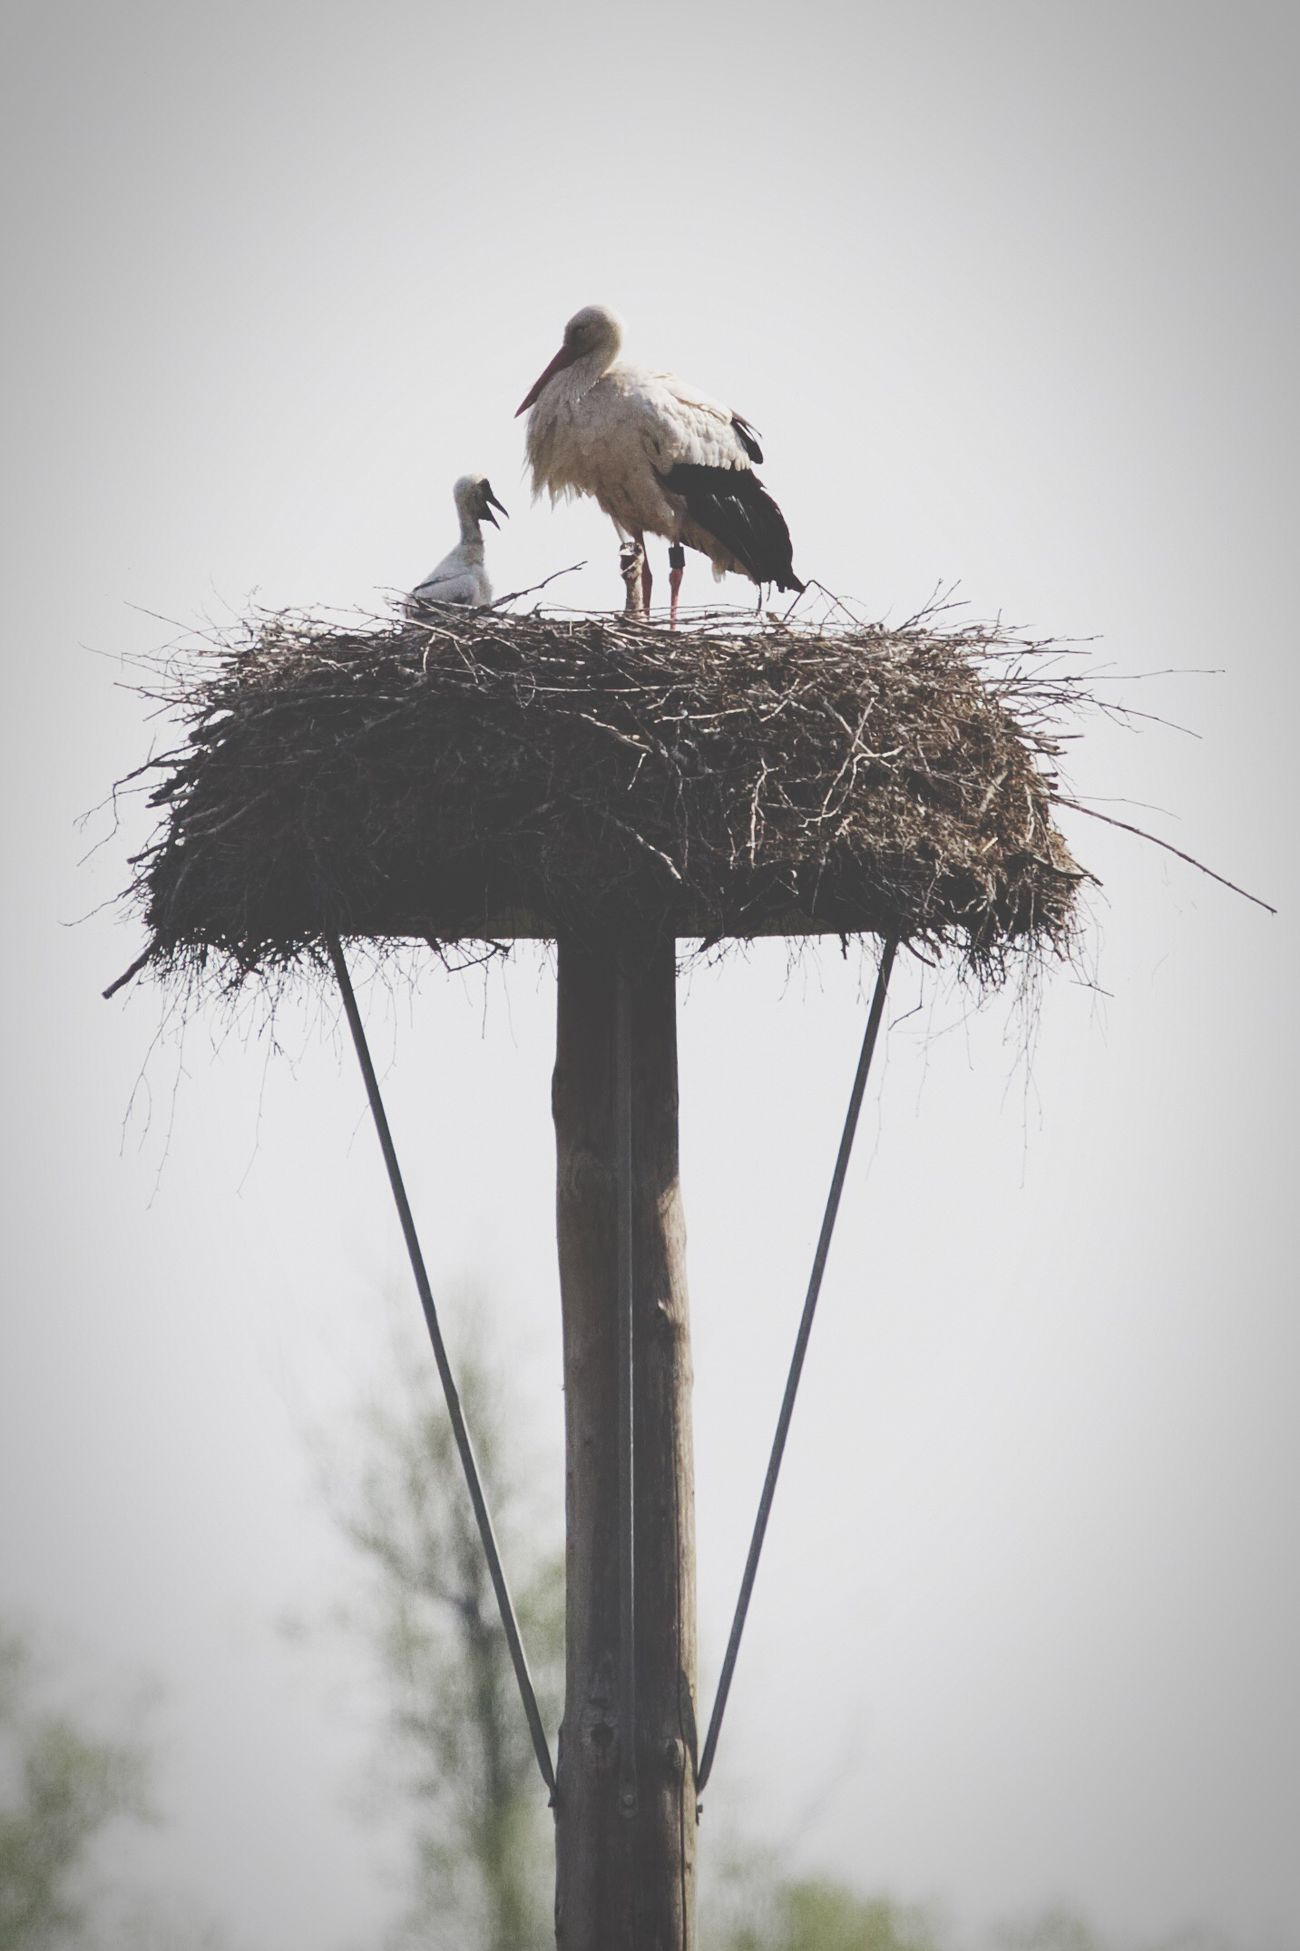 ©415 Newborn storks Stork Bird Bird Photography Canonphotography Bird Nest The Great Outdoors - 2017 EyeEm Awards Exceptional Photographs EyeEm Masterclass Simple Quiet Love EyeEmNewHere First Eyeem Photo BYOPaper! EyeEm Gallery The Week Of Eyeem Showcase May Live For The Story Taking Photos Nature_collection Nature Photography Nature On Your Doorstep Photooftheday Newborn Different Perspective New Life Photography Is My Escape From Reality!